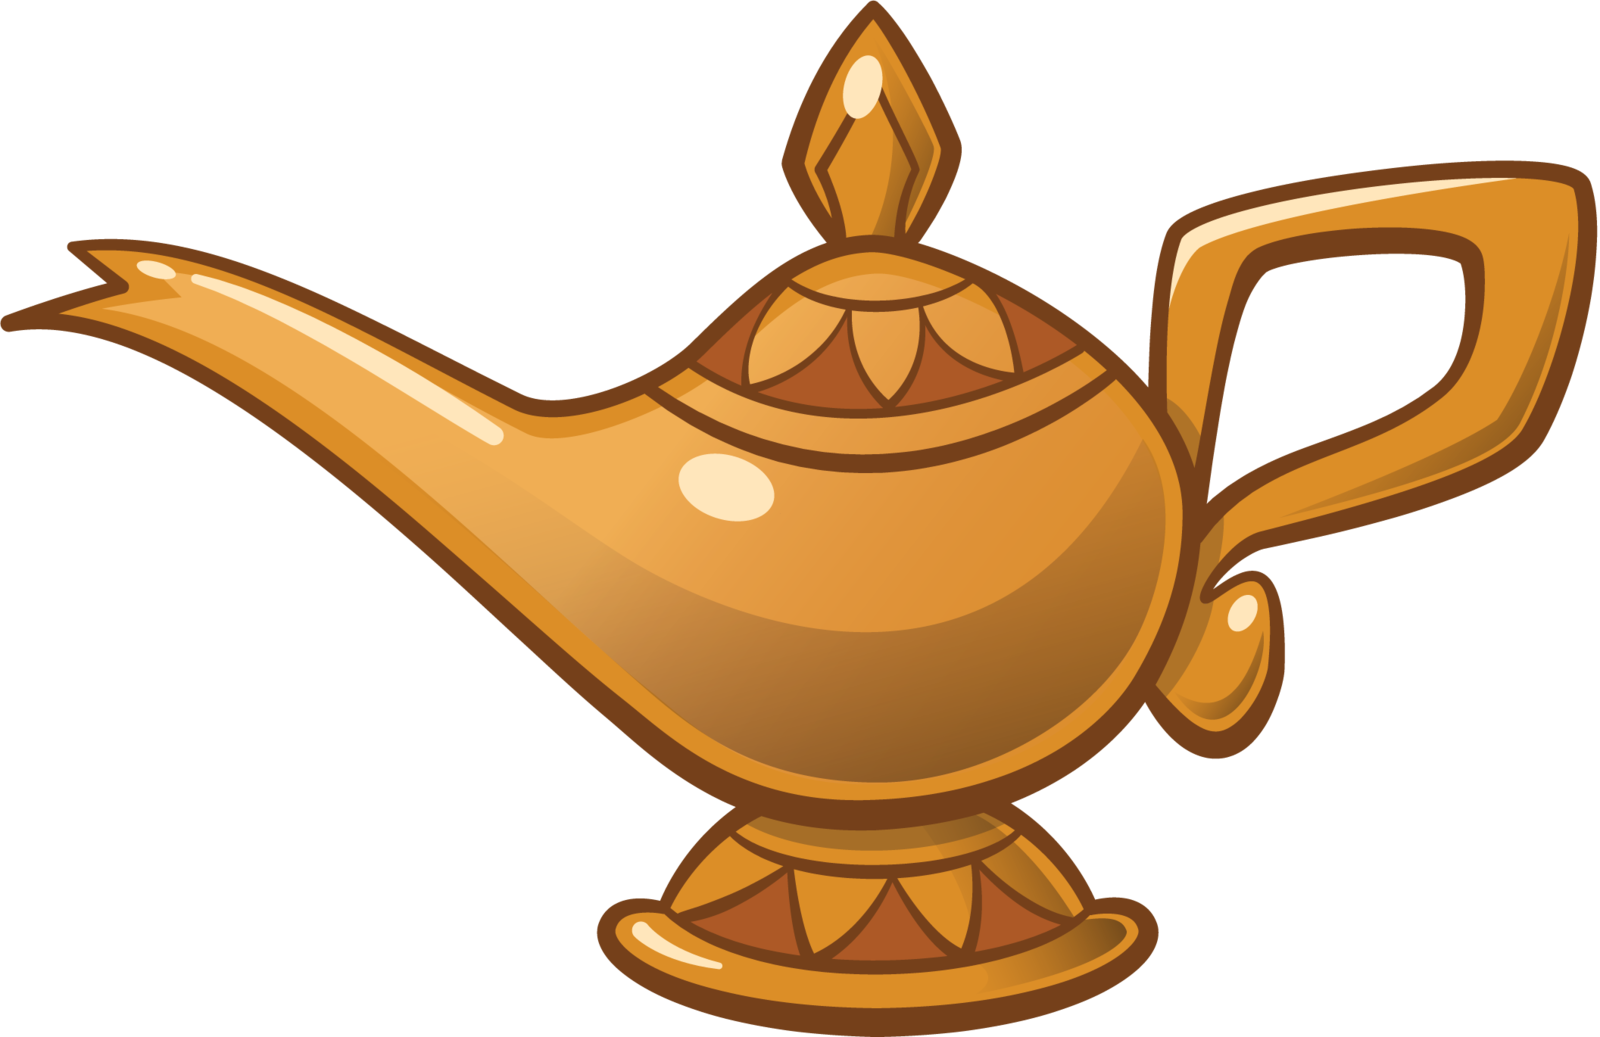 image magic lamp png disney emoji blitz wiki fandom powered by wikia Lilo and Stitch Clip Art Finding Nemo Clip Art